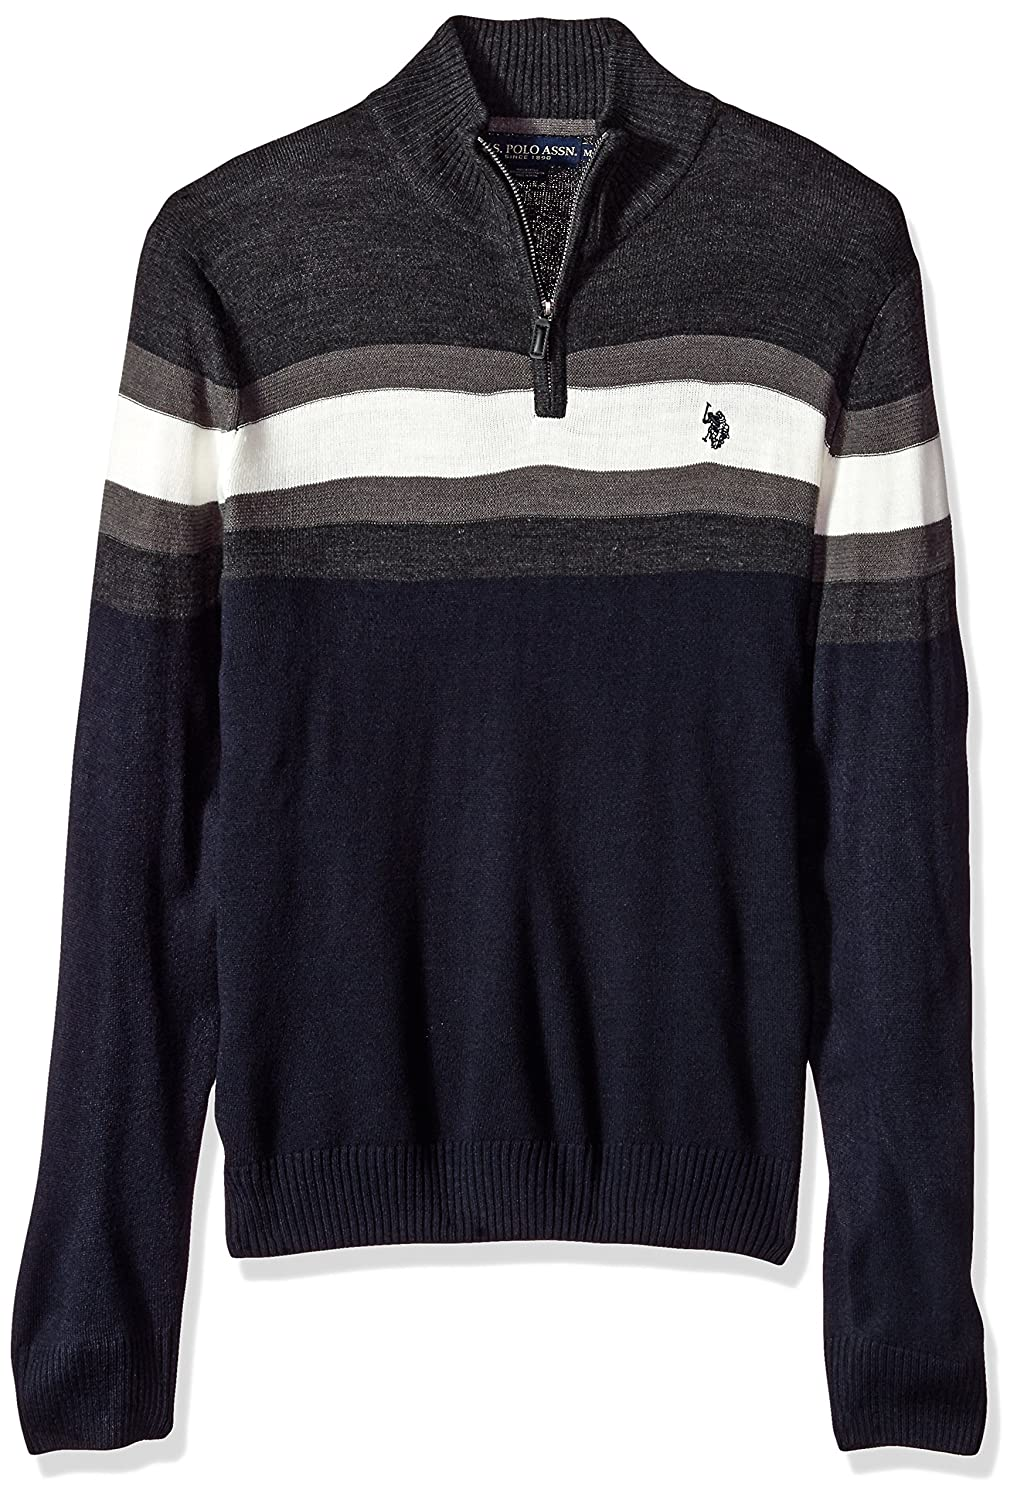 U.S. Polo Assn. Men's Acrylic Chest Stripe 1/4 Zip Sweater ACUF7S5862